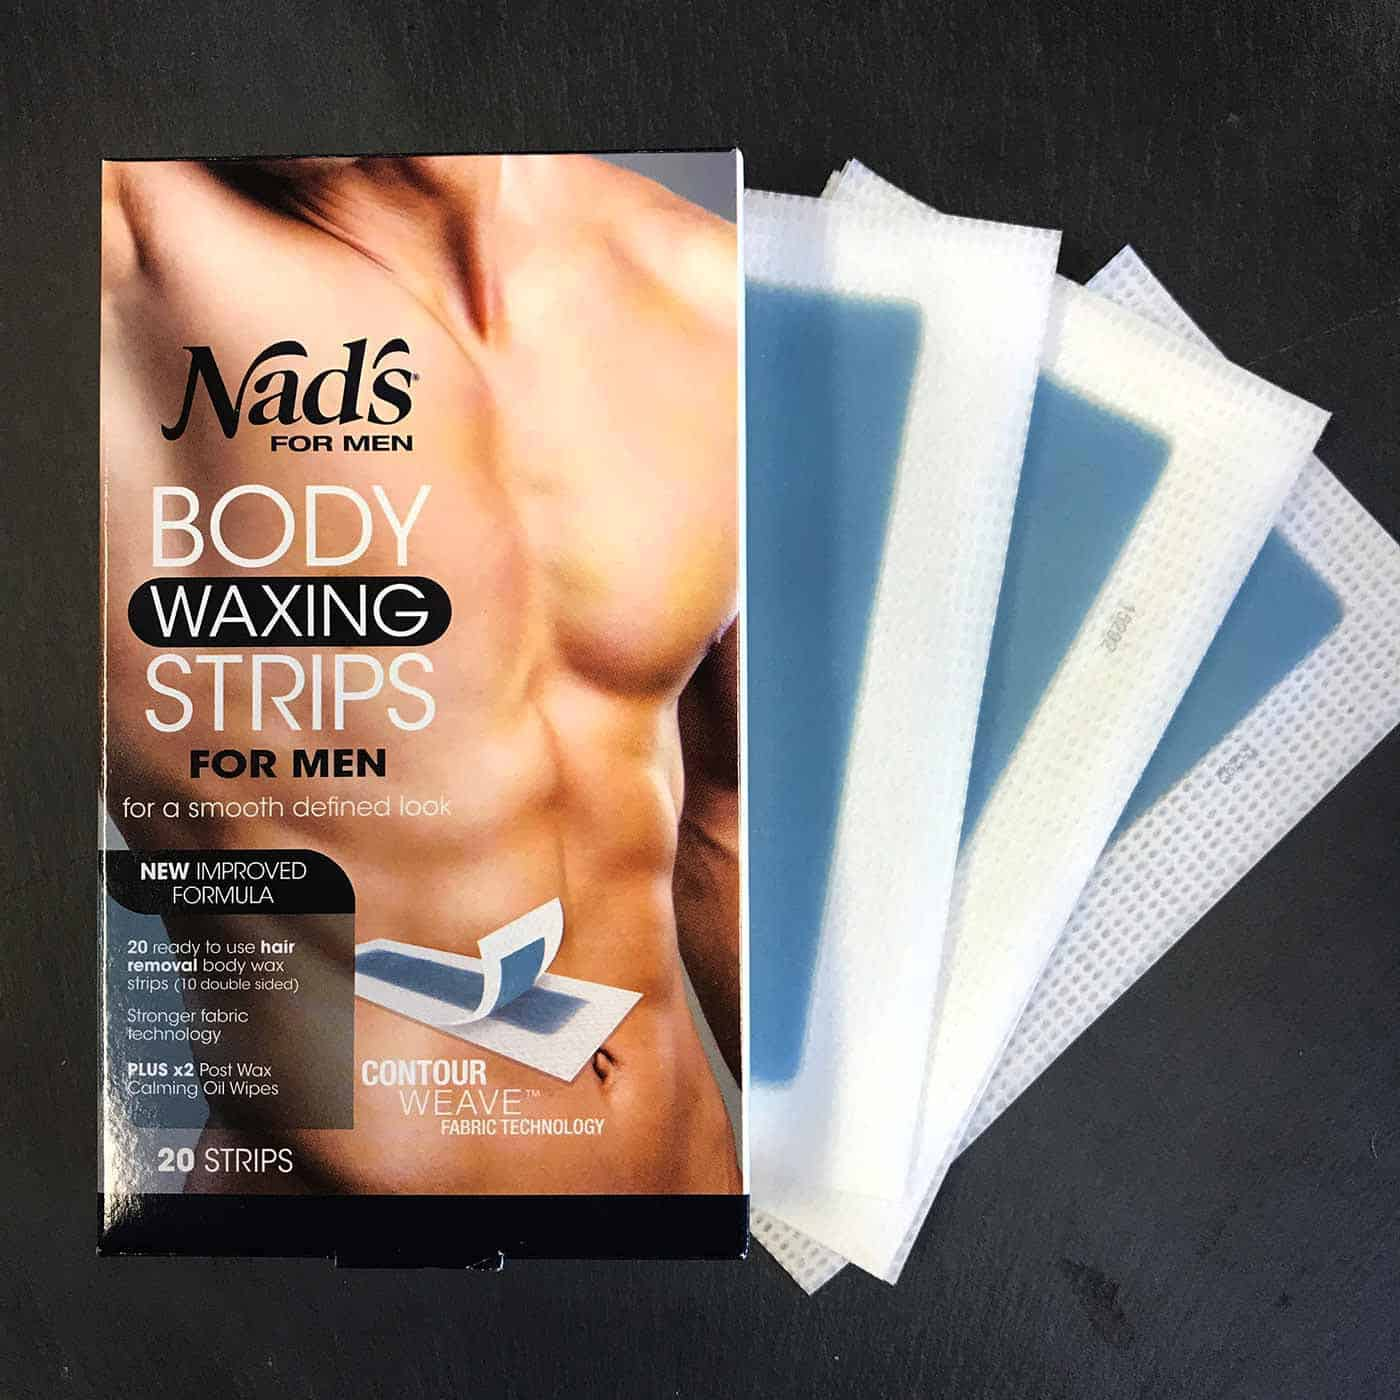 Easy Hair Removal for Men | Nad's Hair Removal Blog